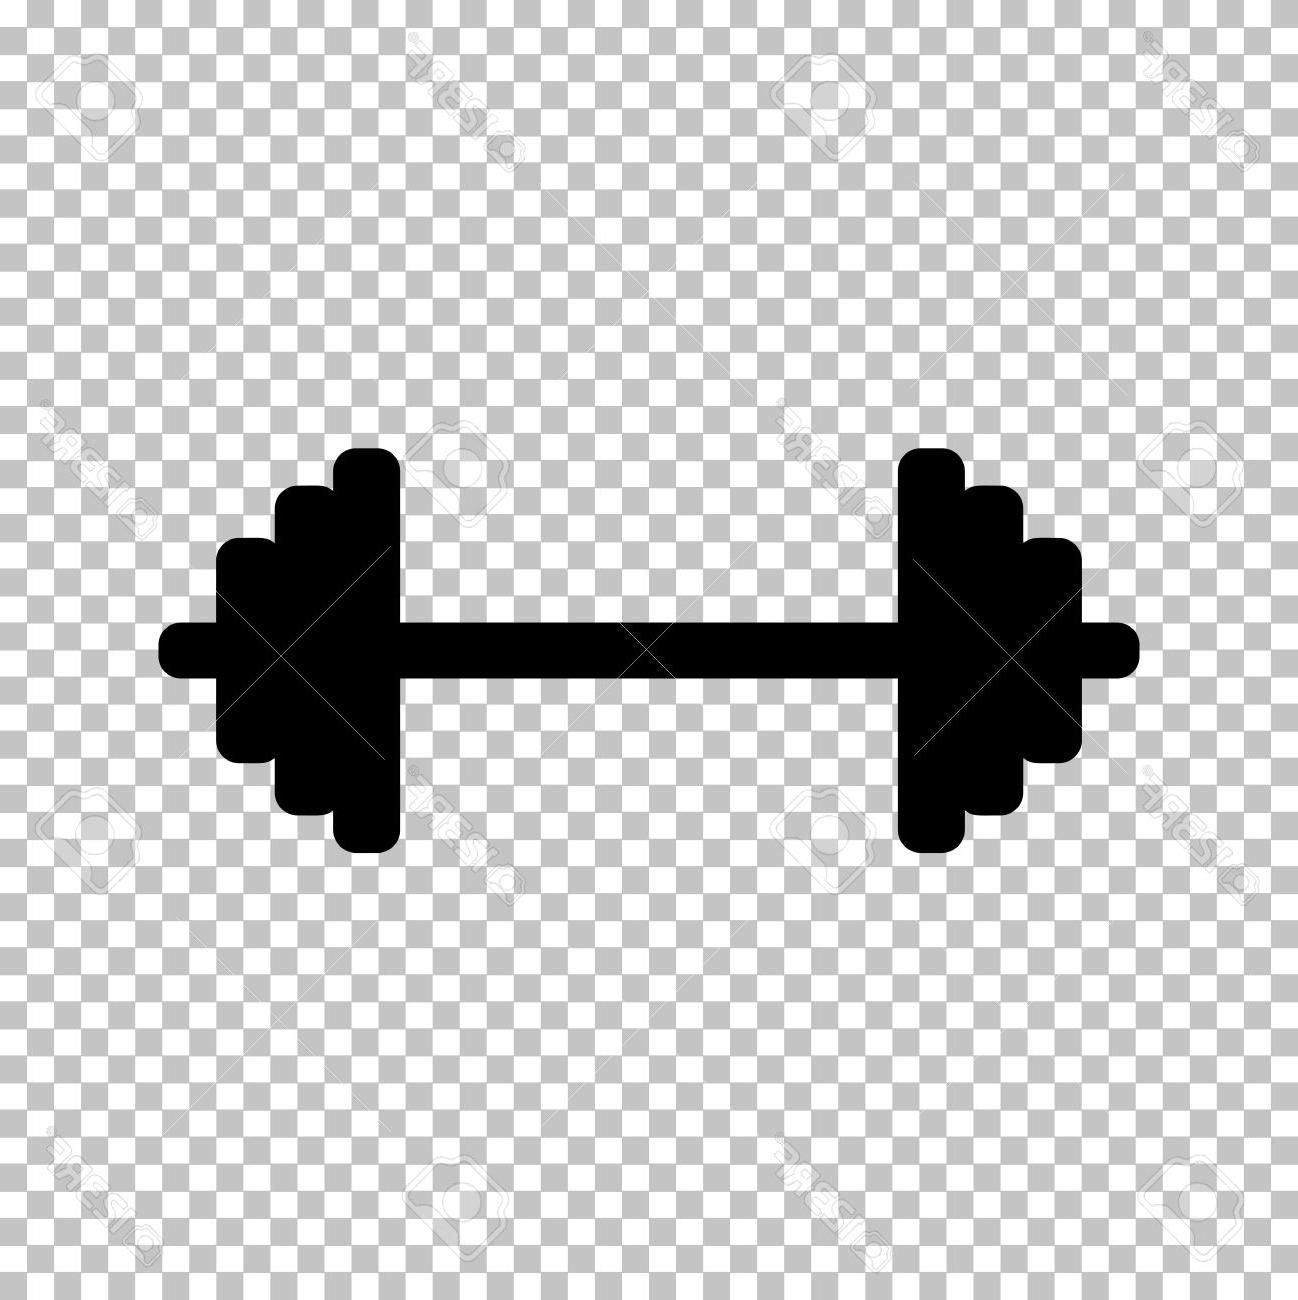 Weights clipart. Station